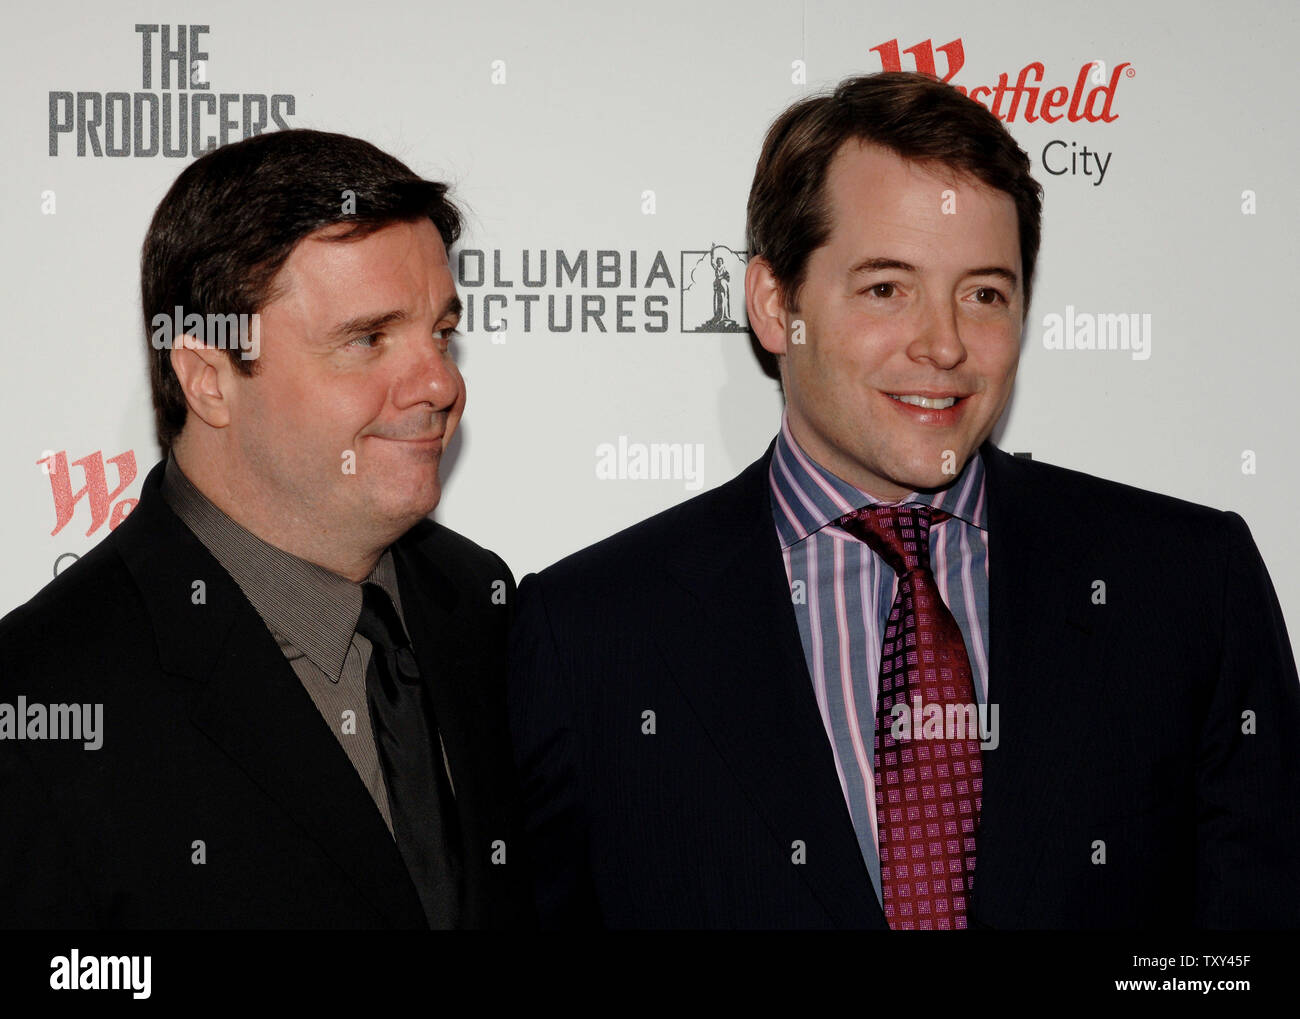 Actors Nathan Lane (L) and Matthew Broderick arrive for the